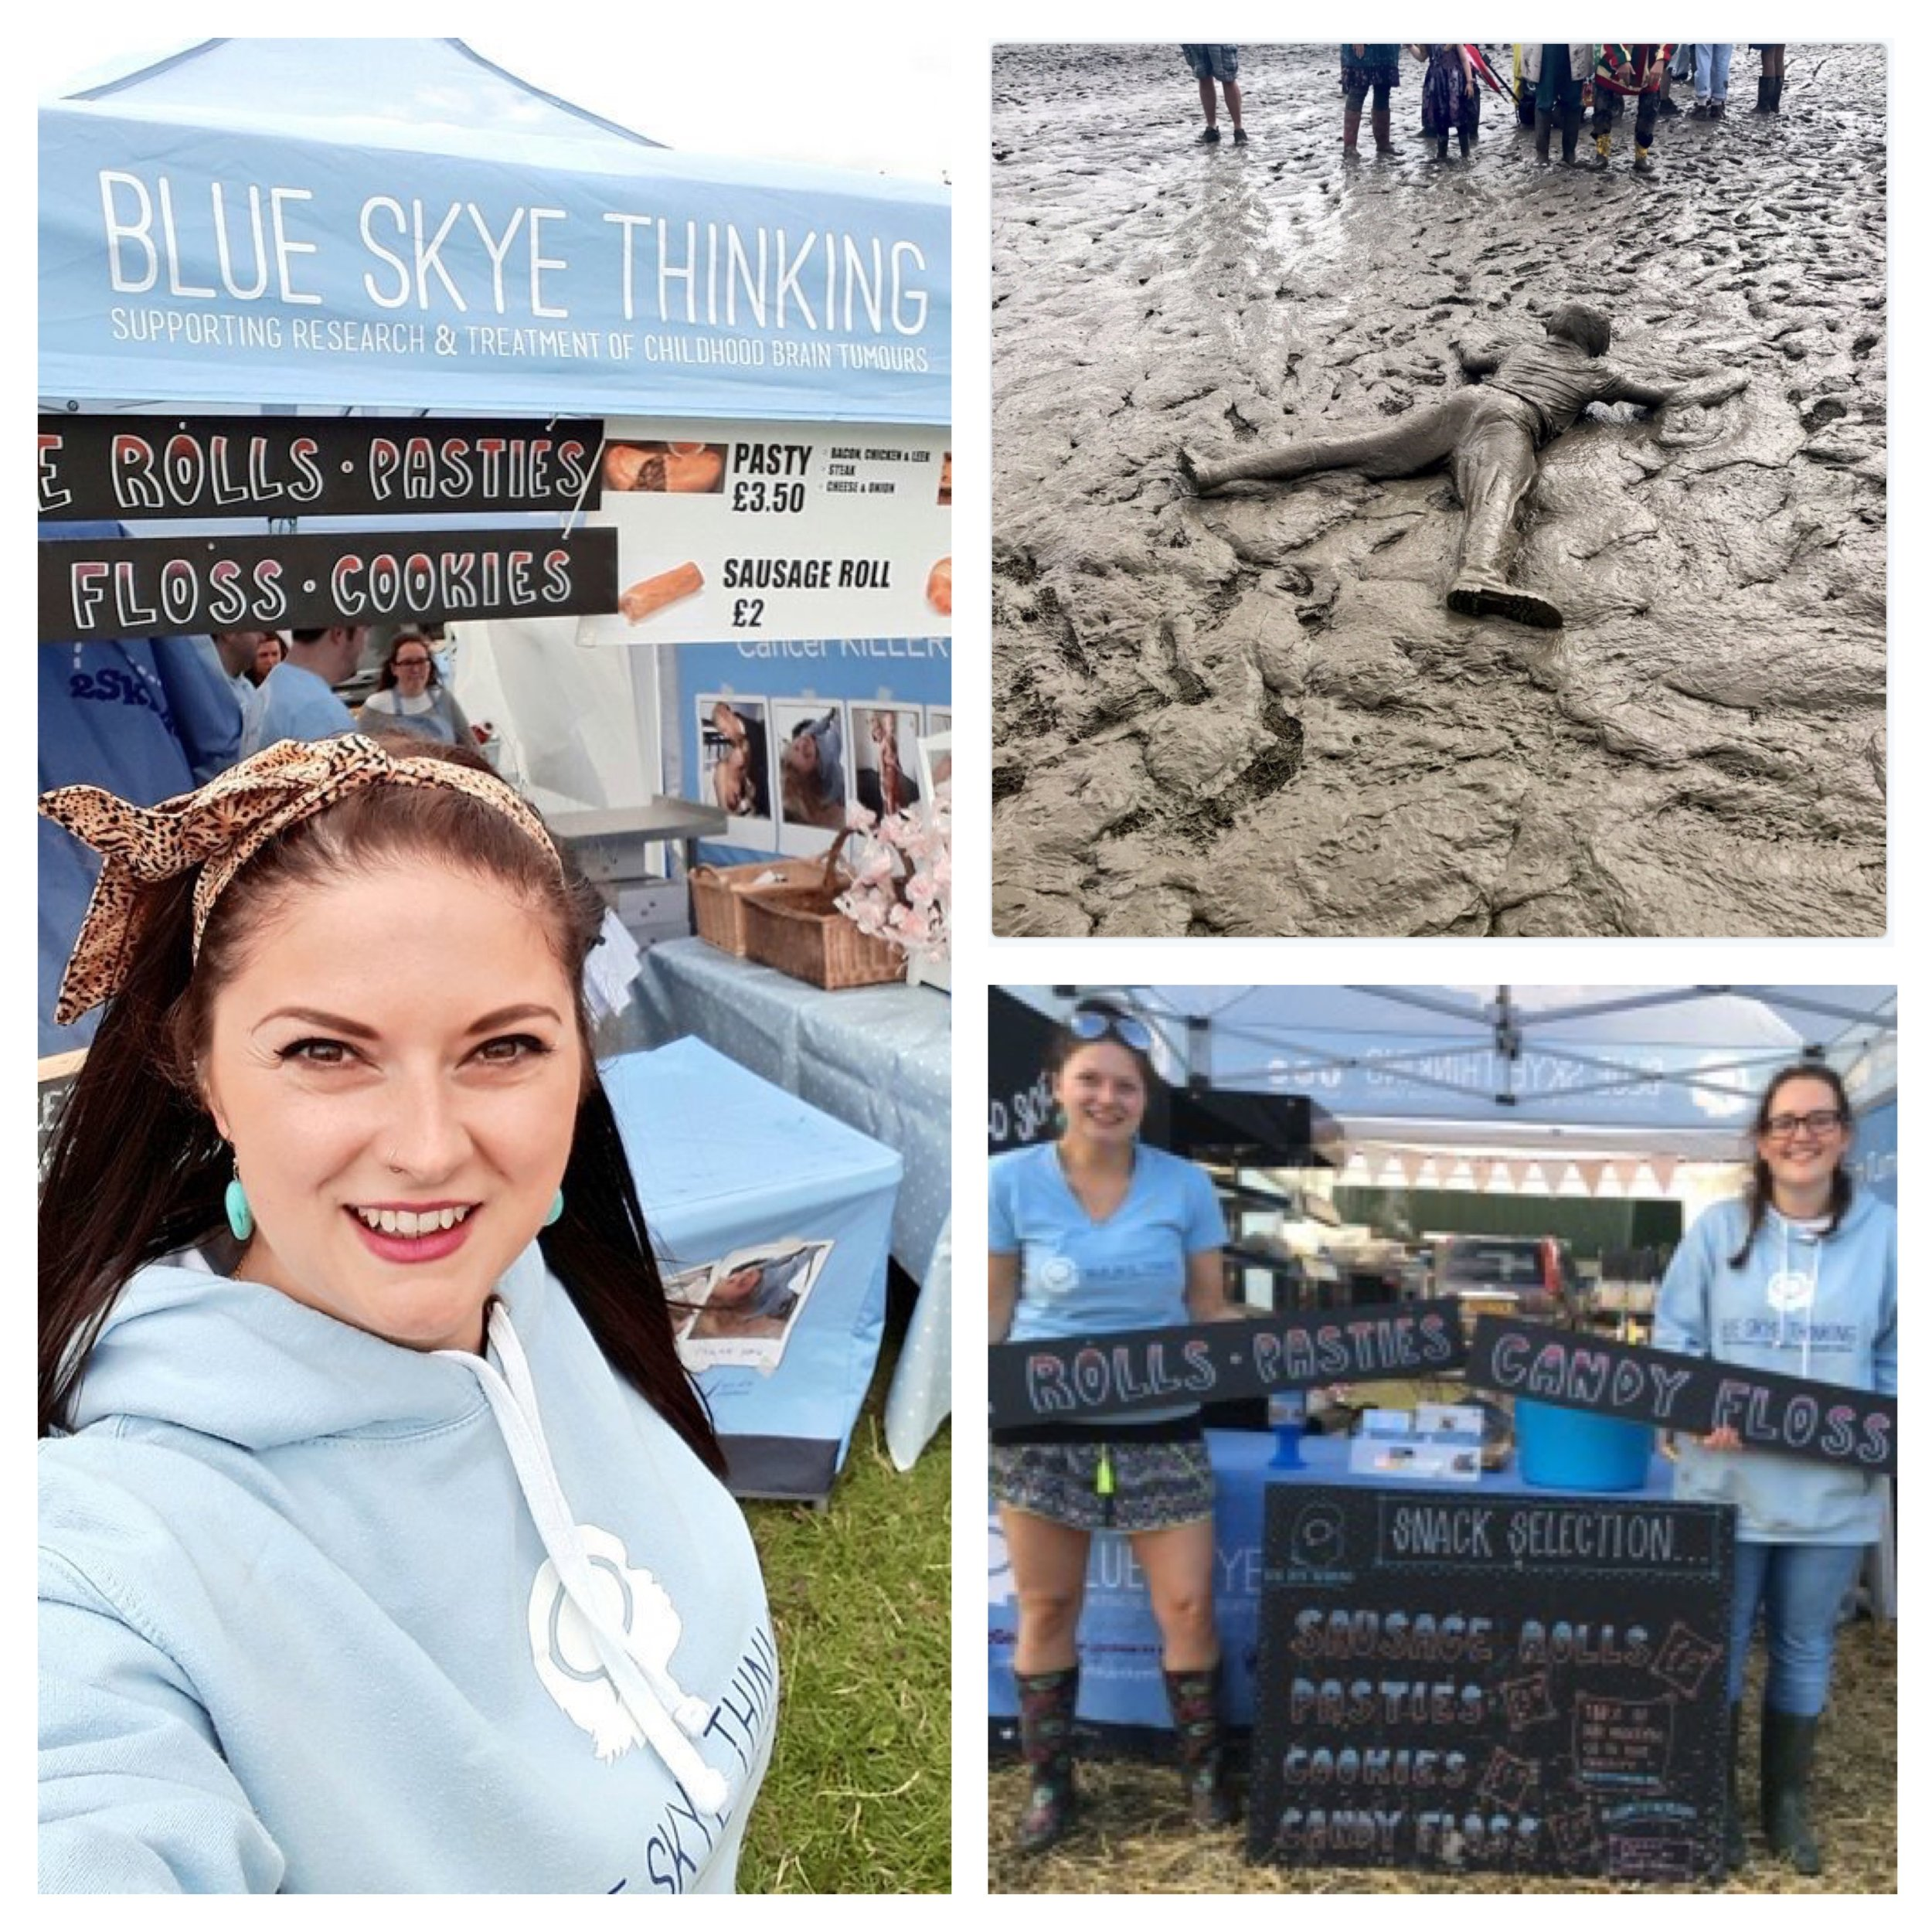 Our amazing volunteers survived the mud at this year's Truck Festival and made a whooping £3,000 for the charity. Despite very challenging weather conditions, team Skye pulled together and remained up beat as they served delicious pasties and sausage rolls to the revellers. A special thanks to the wonderful Sophie Payne who co-ordinated the volunteers, Jon George and Paul Ewart for making some super cool sign boards and James Hart from Delicious of Wantage for generally being an all round amazing guy! Getting closer to our charity targets every day but by crikey, fundraising is not for the faint hearted!! All support gratefully received.